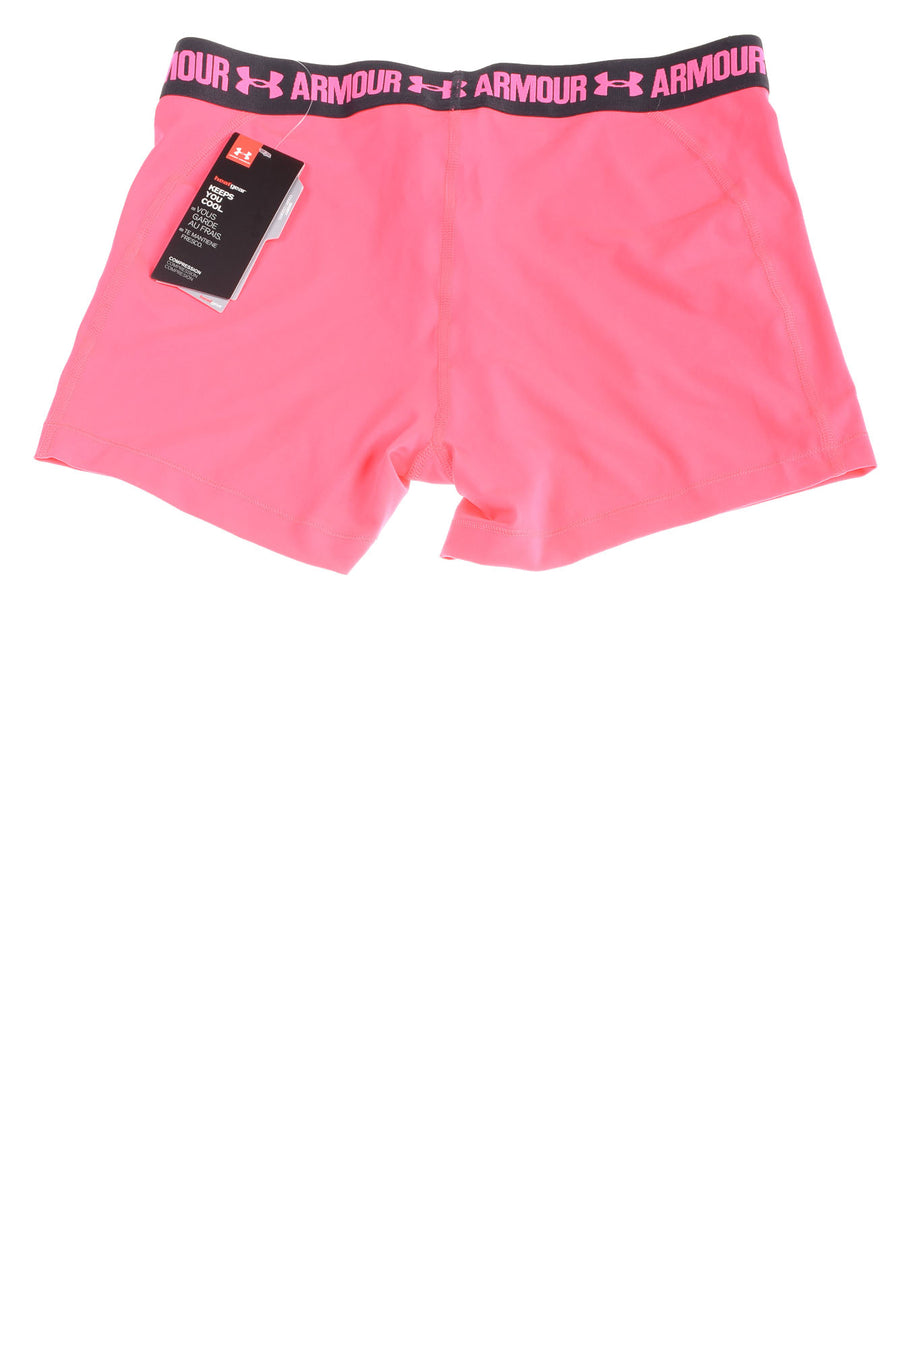 NEW Under Armour Women's Shorts Large Pink